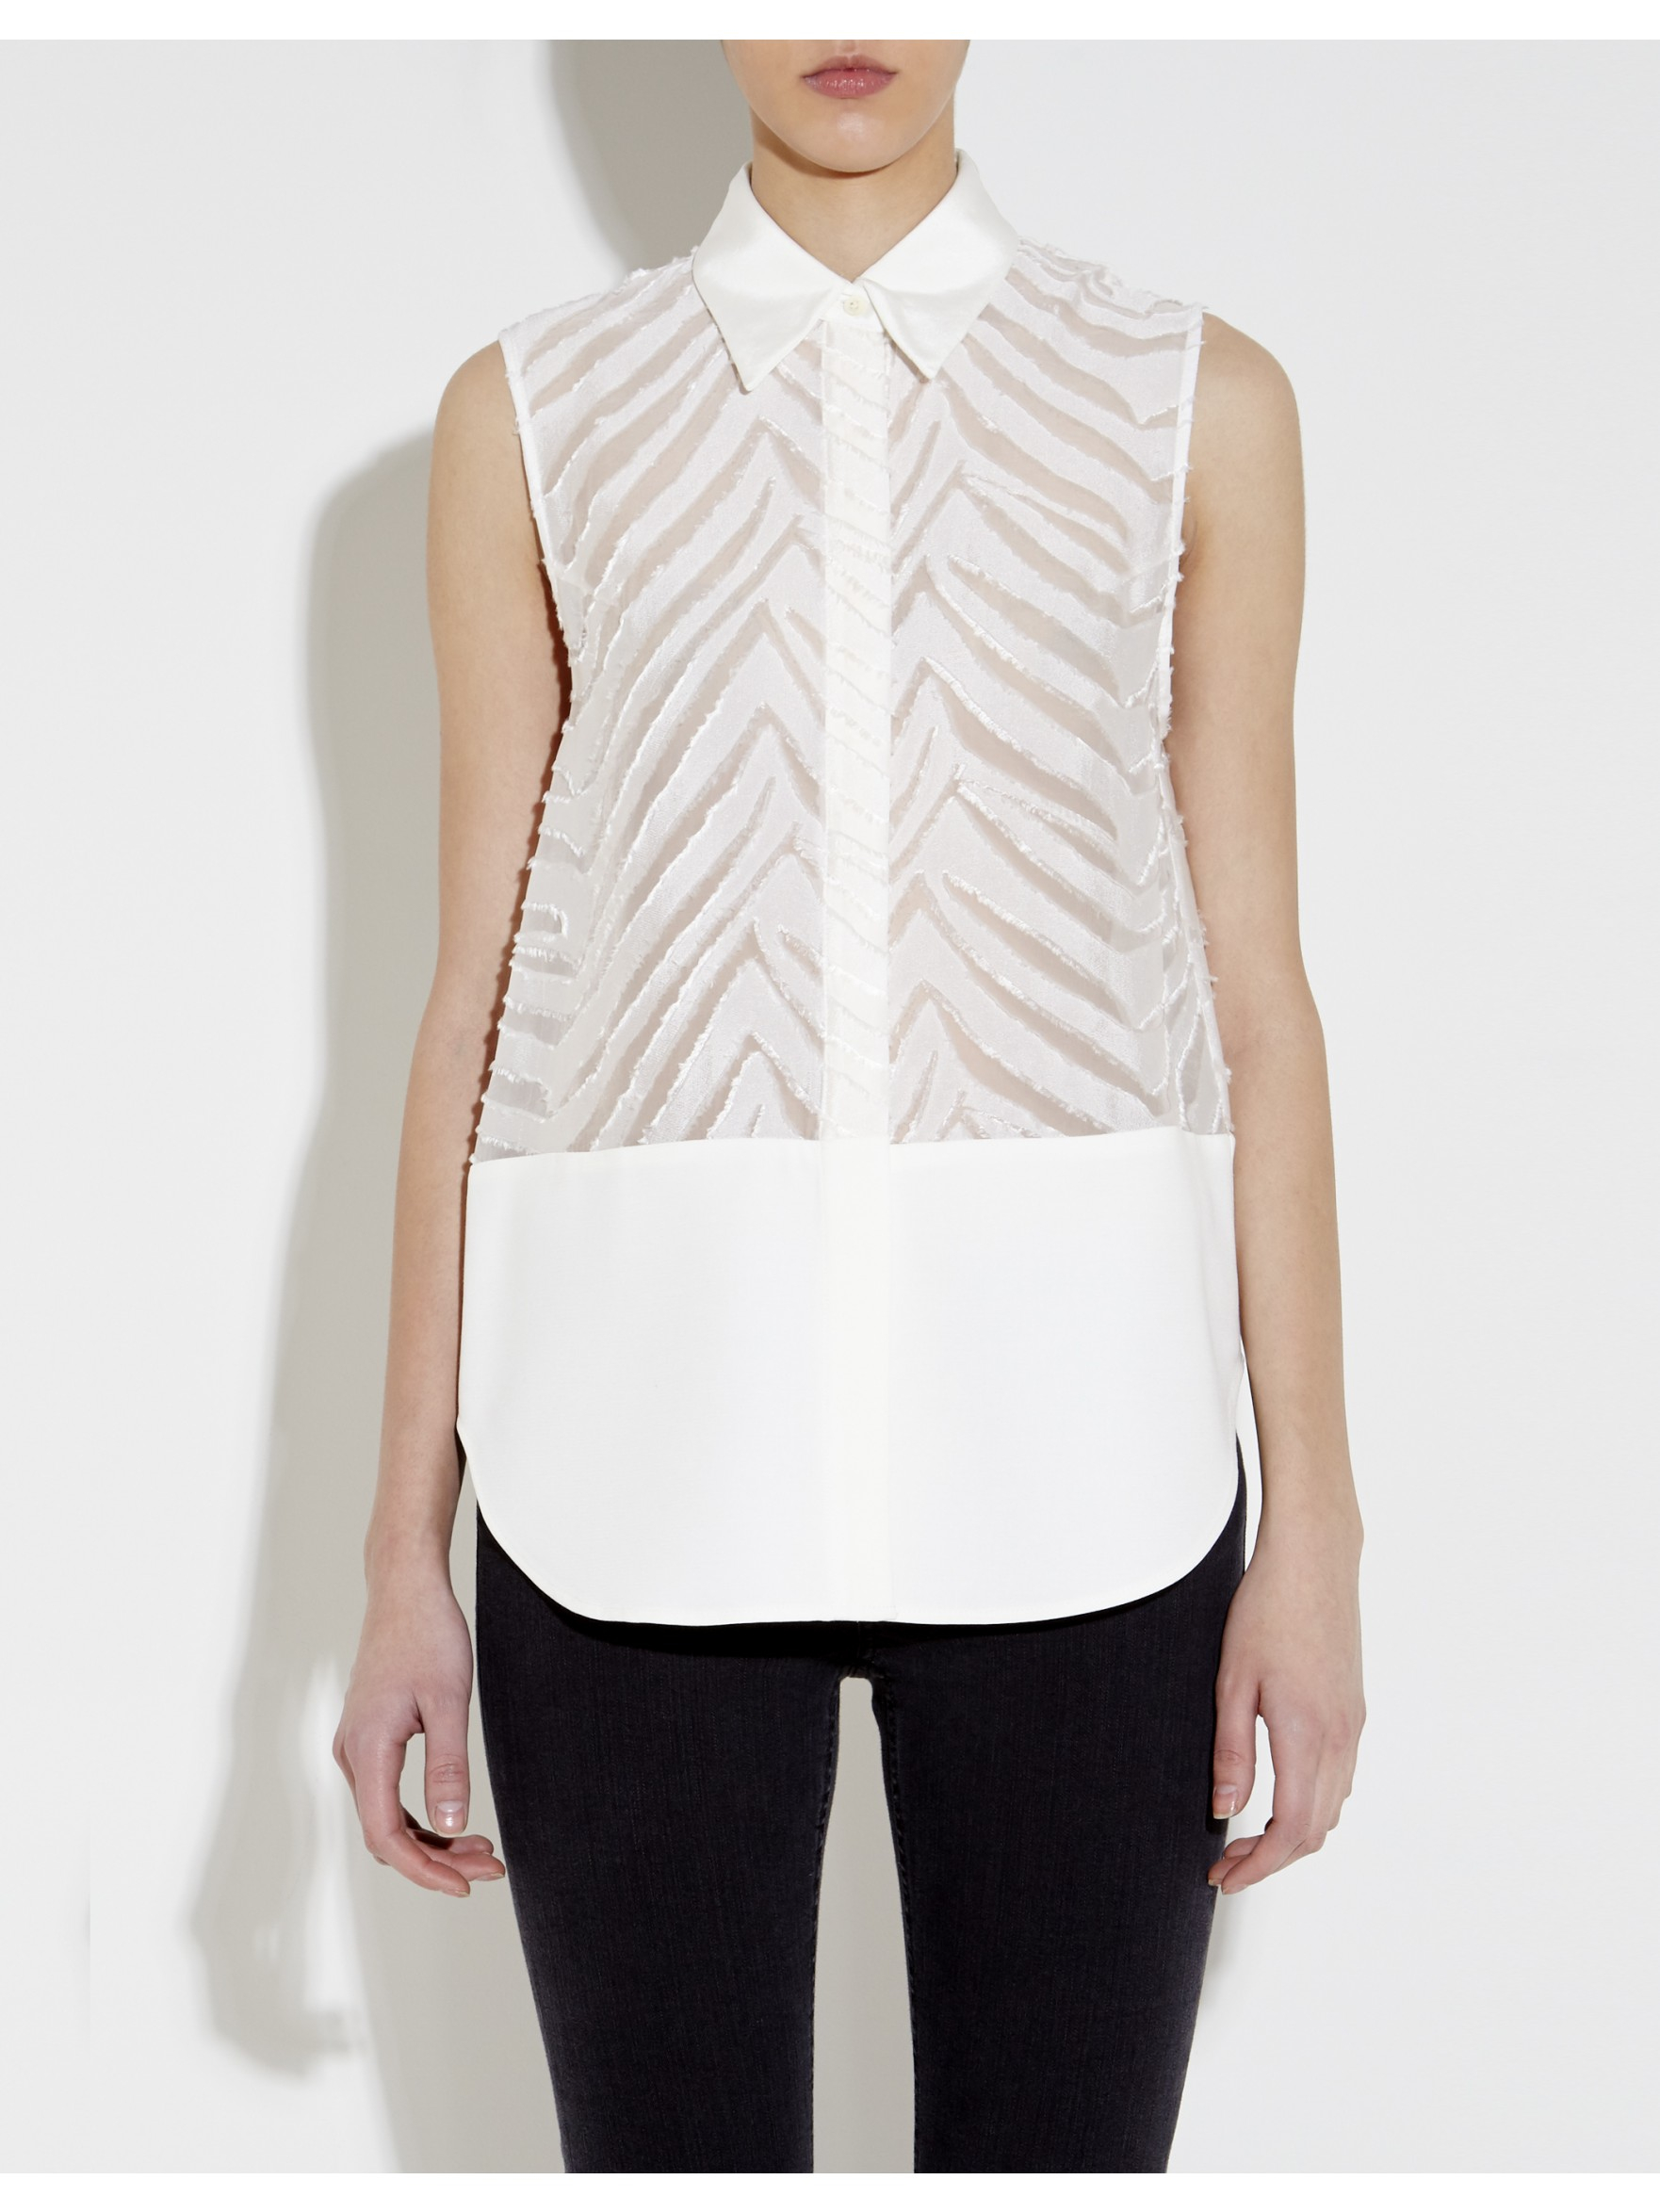 Shop for white sleeveless collar shirt online at Target. Free shipping on purchases over $35 and save 5% every day with your Target REDcard.